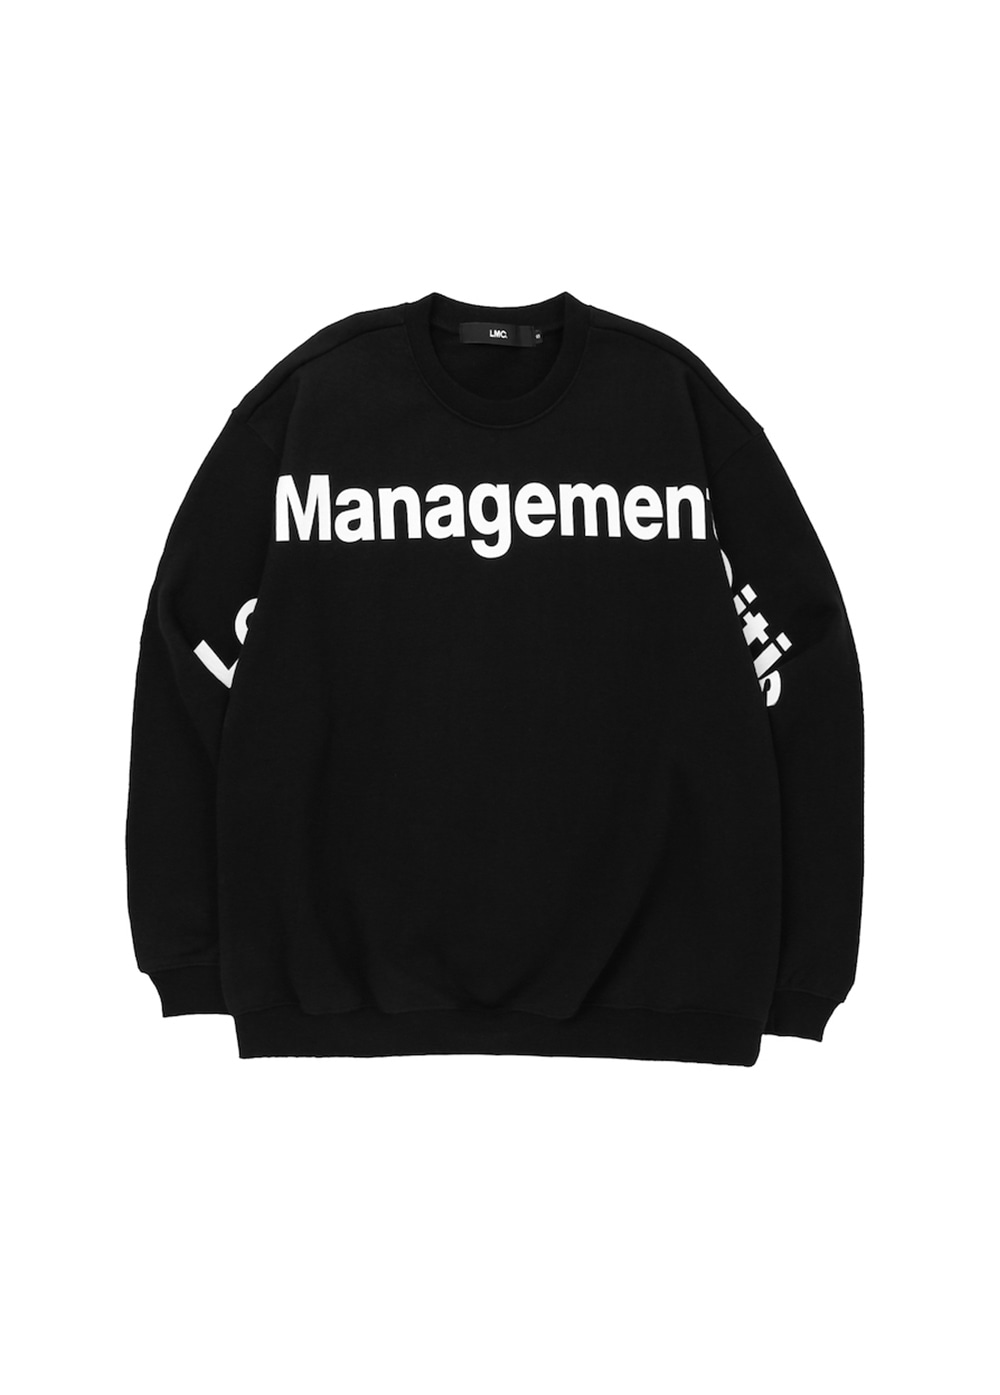 LMC FN LOGO OVERSIZED SWEATSHIRT black